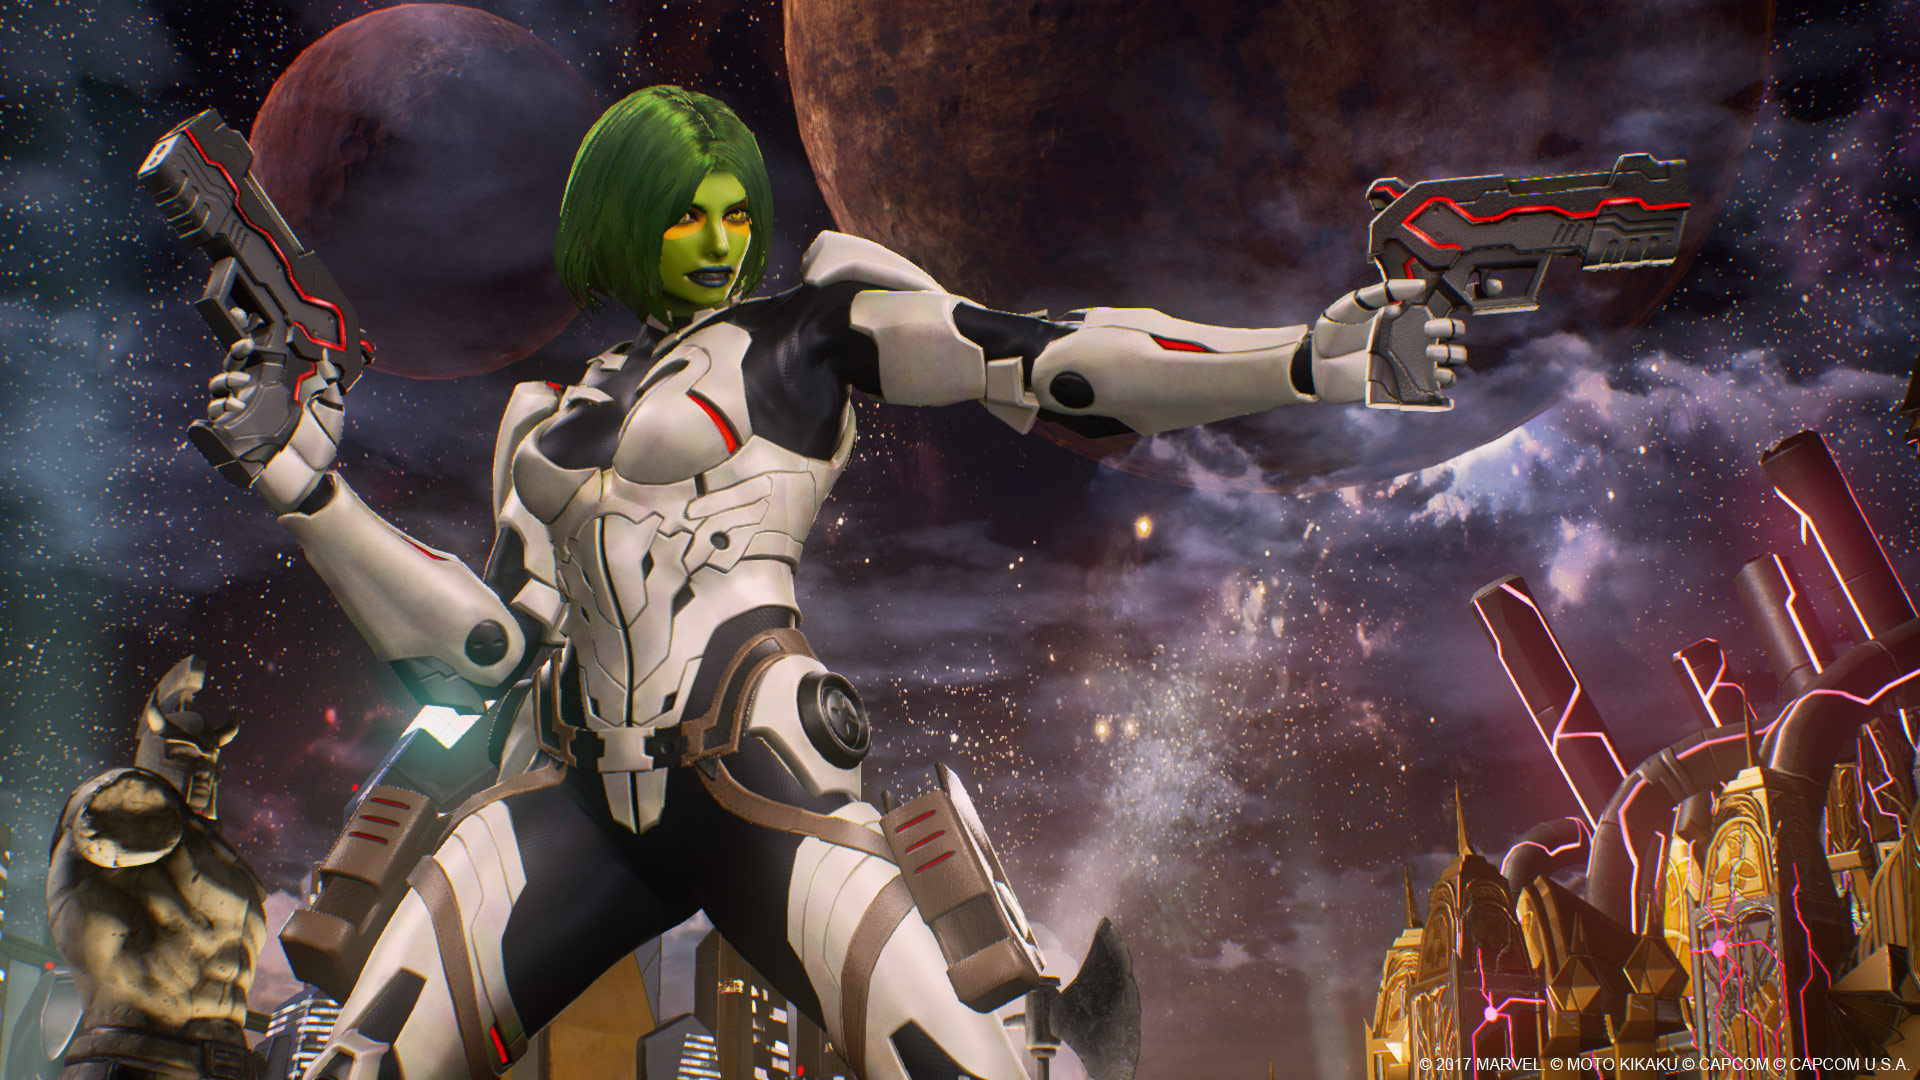 Marvel vs. Capcom: Infinite cover art and new character images from E3 2017 6 out of 26 image gallery